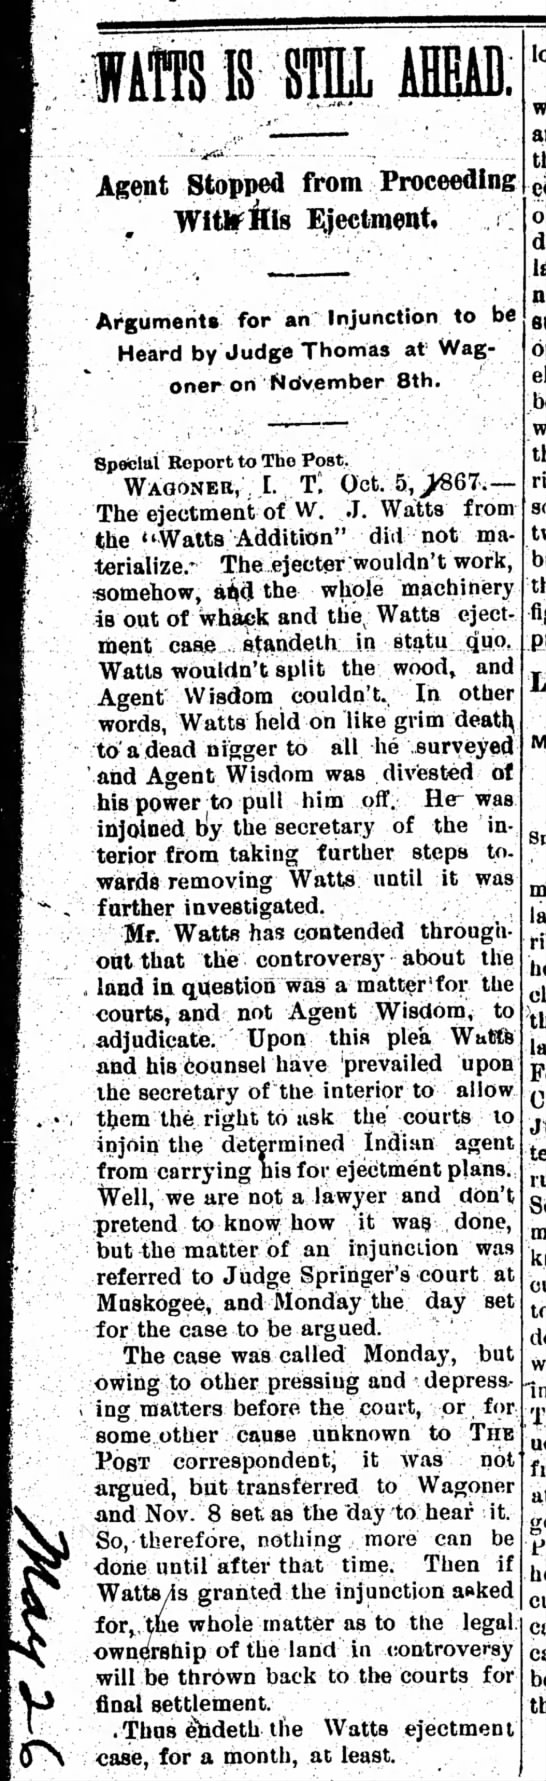 Watts intruder case article - lift IS STE AHEAD. Agent Stopped from...